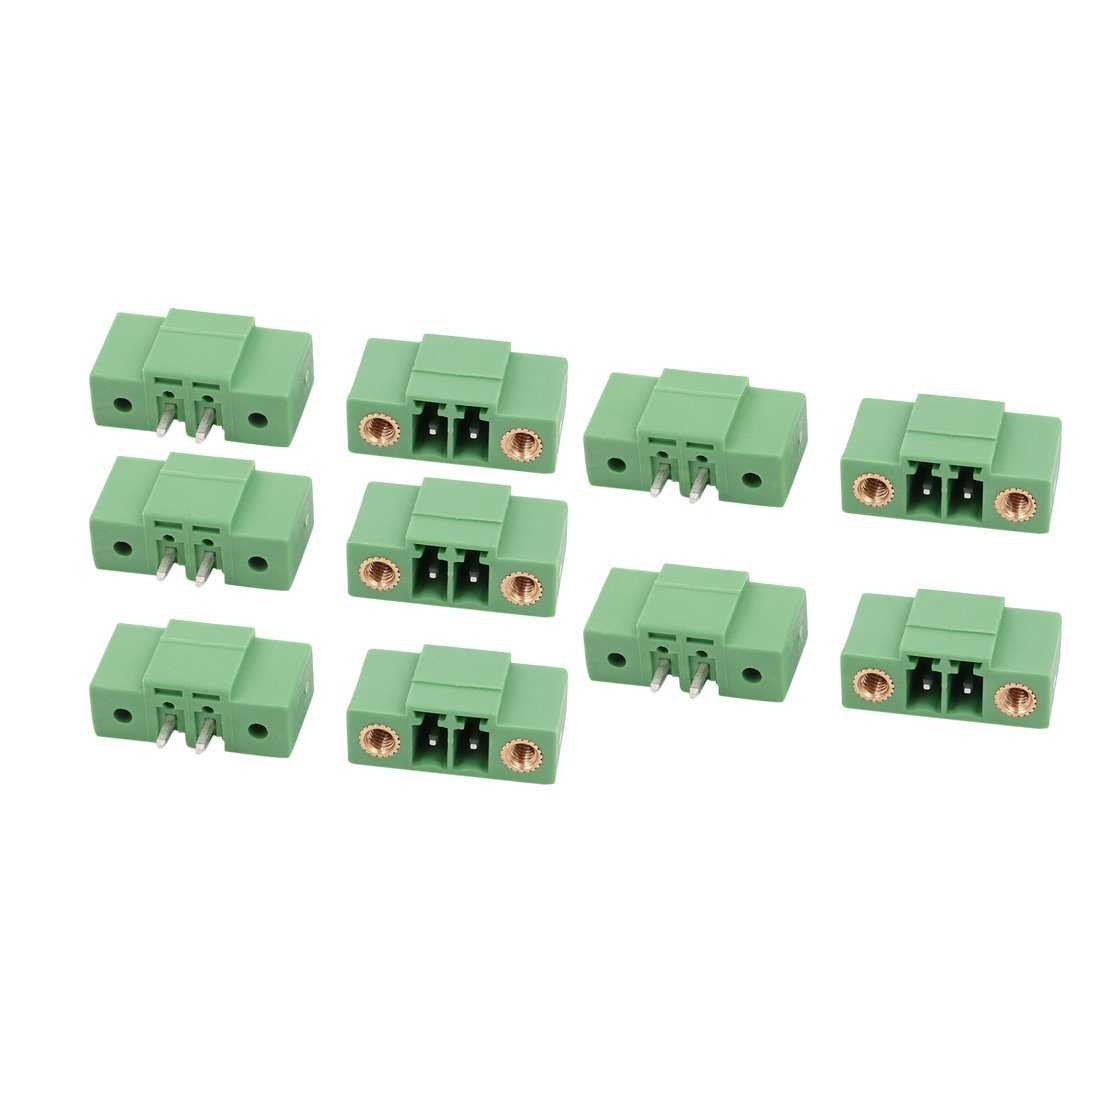 uxcell 10 Pcs LZ1VM AC300V 8A 3.5mm Pitch 2P PCB Terminal Block Wire Connection